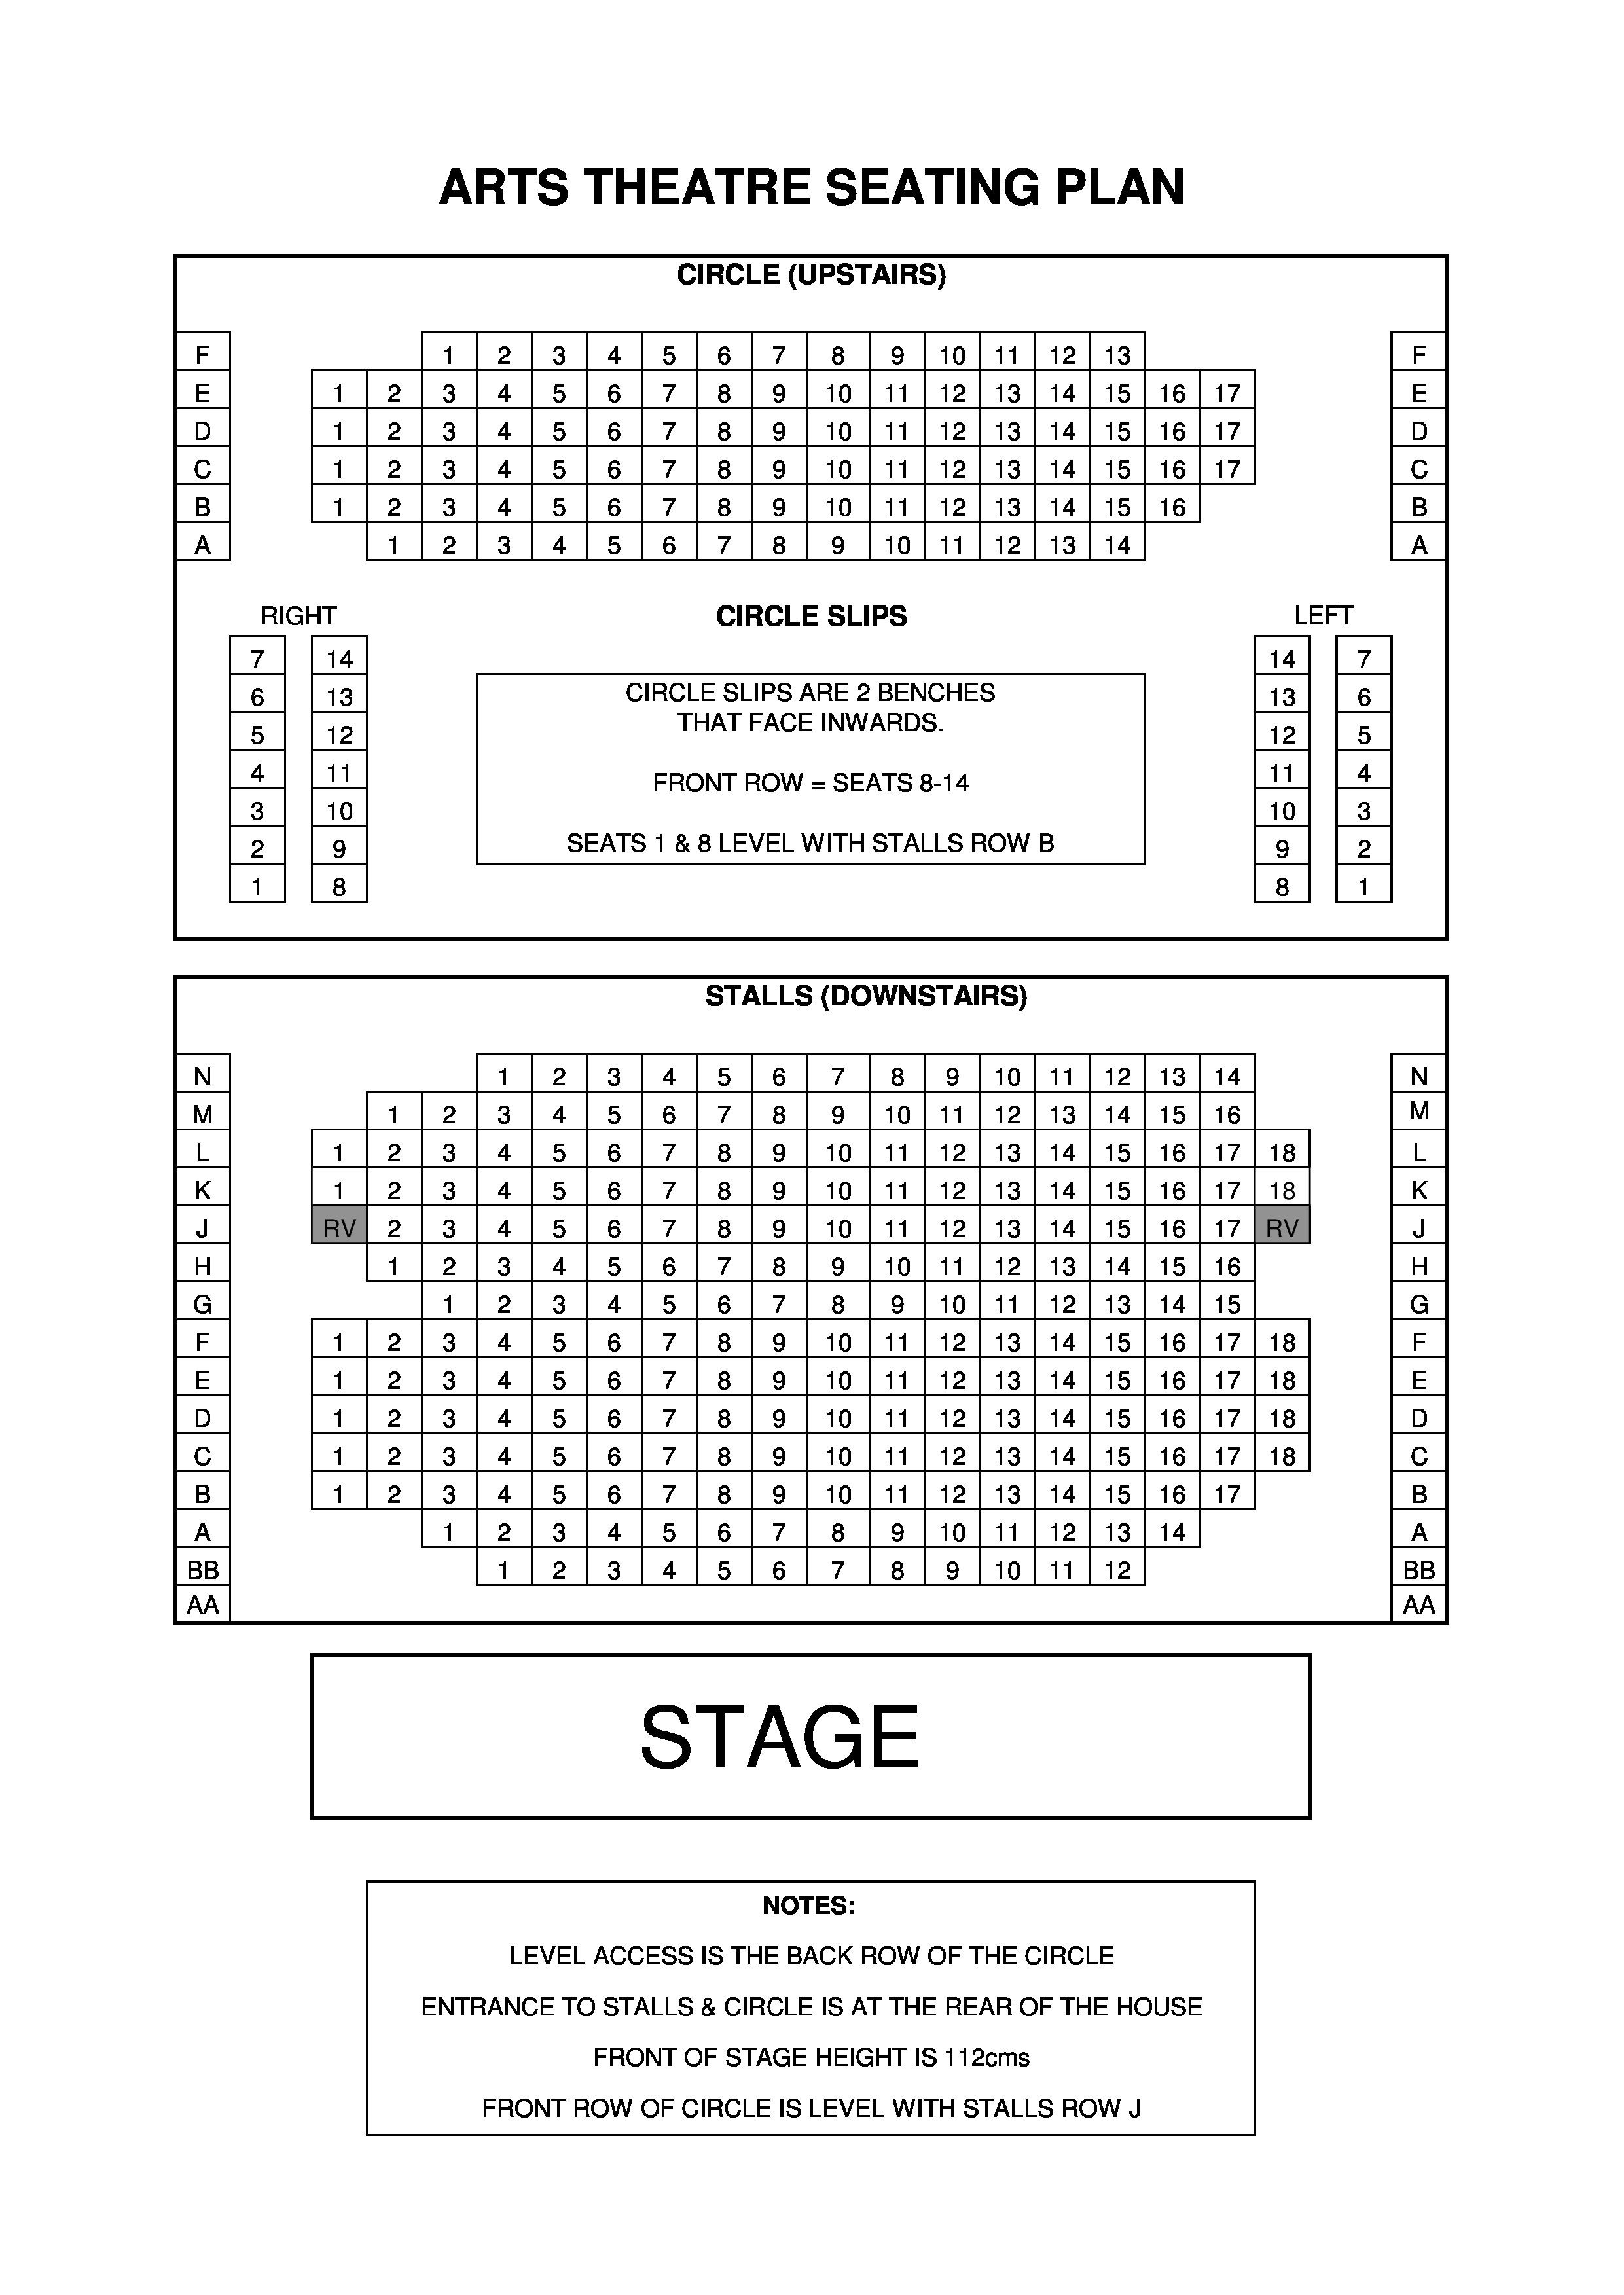 Auditorium Seating Chart Template Ticket Booking Information Arts theatre